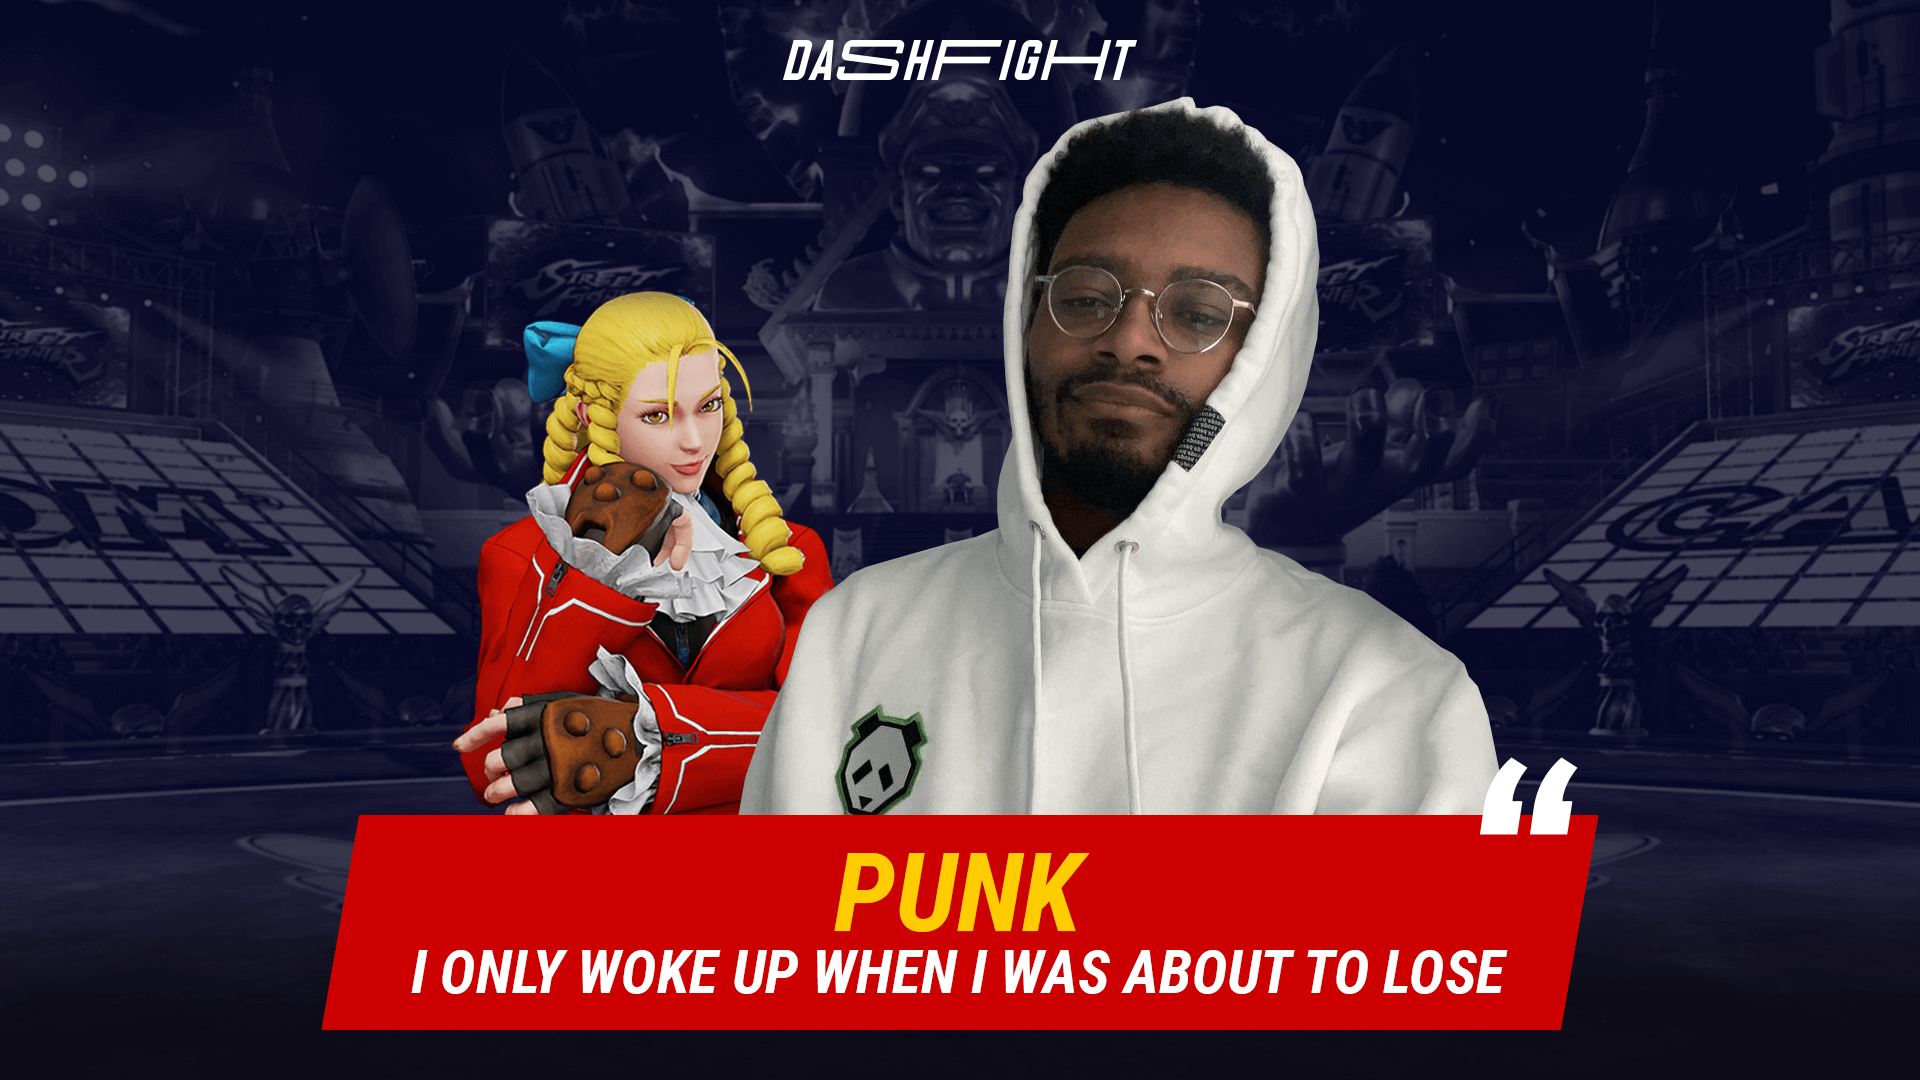 Punk: (In CPT Grand Finals) I only woke up when I was about to lose